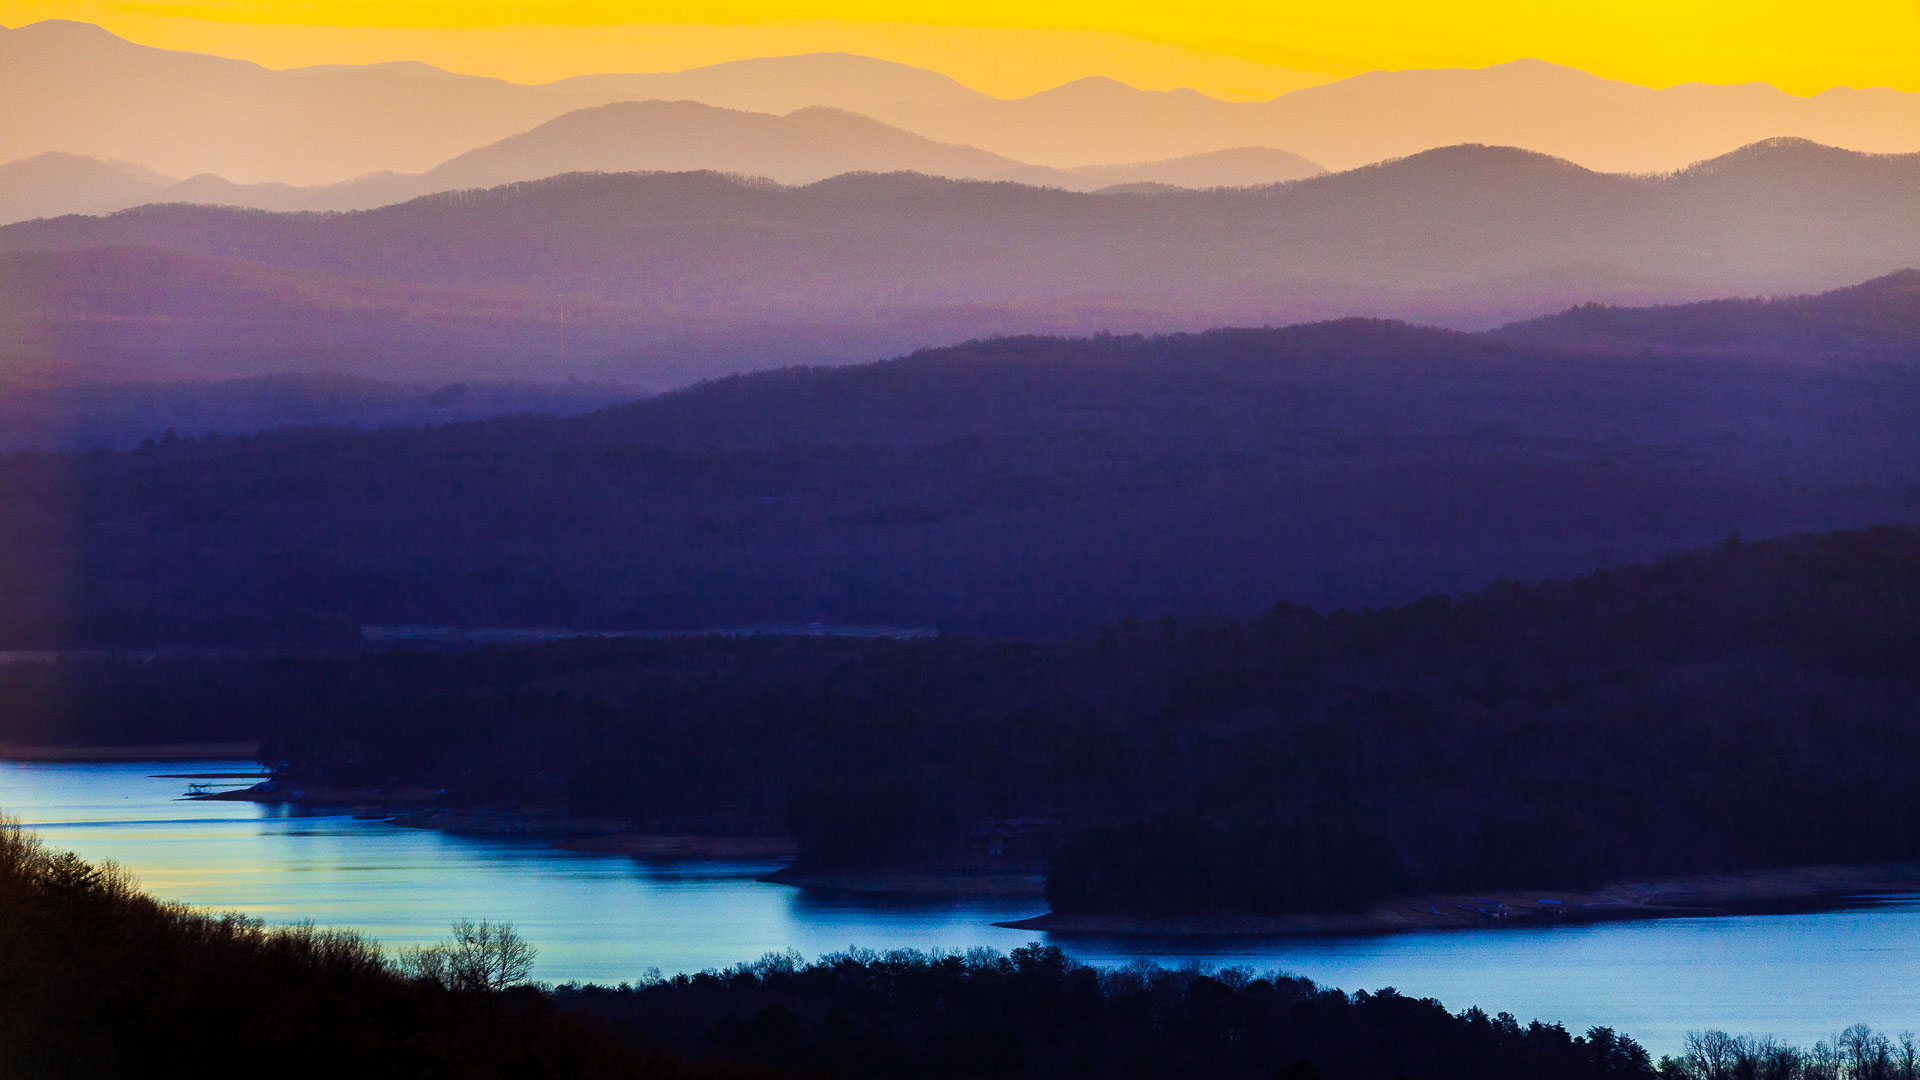 The true color from warm tones to cool ones in the Blue Ridge Mountains of Georgia by Kevin Ames